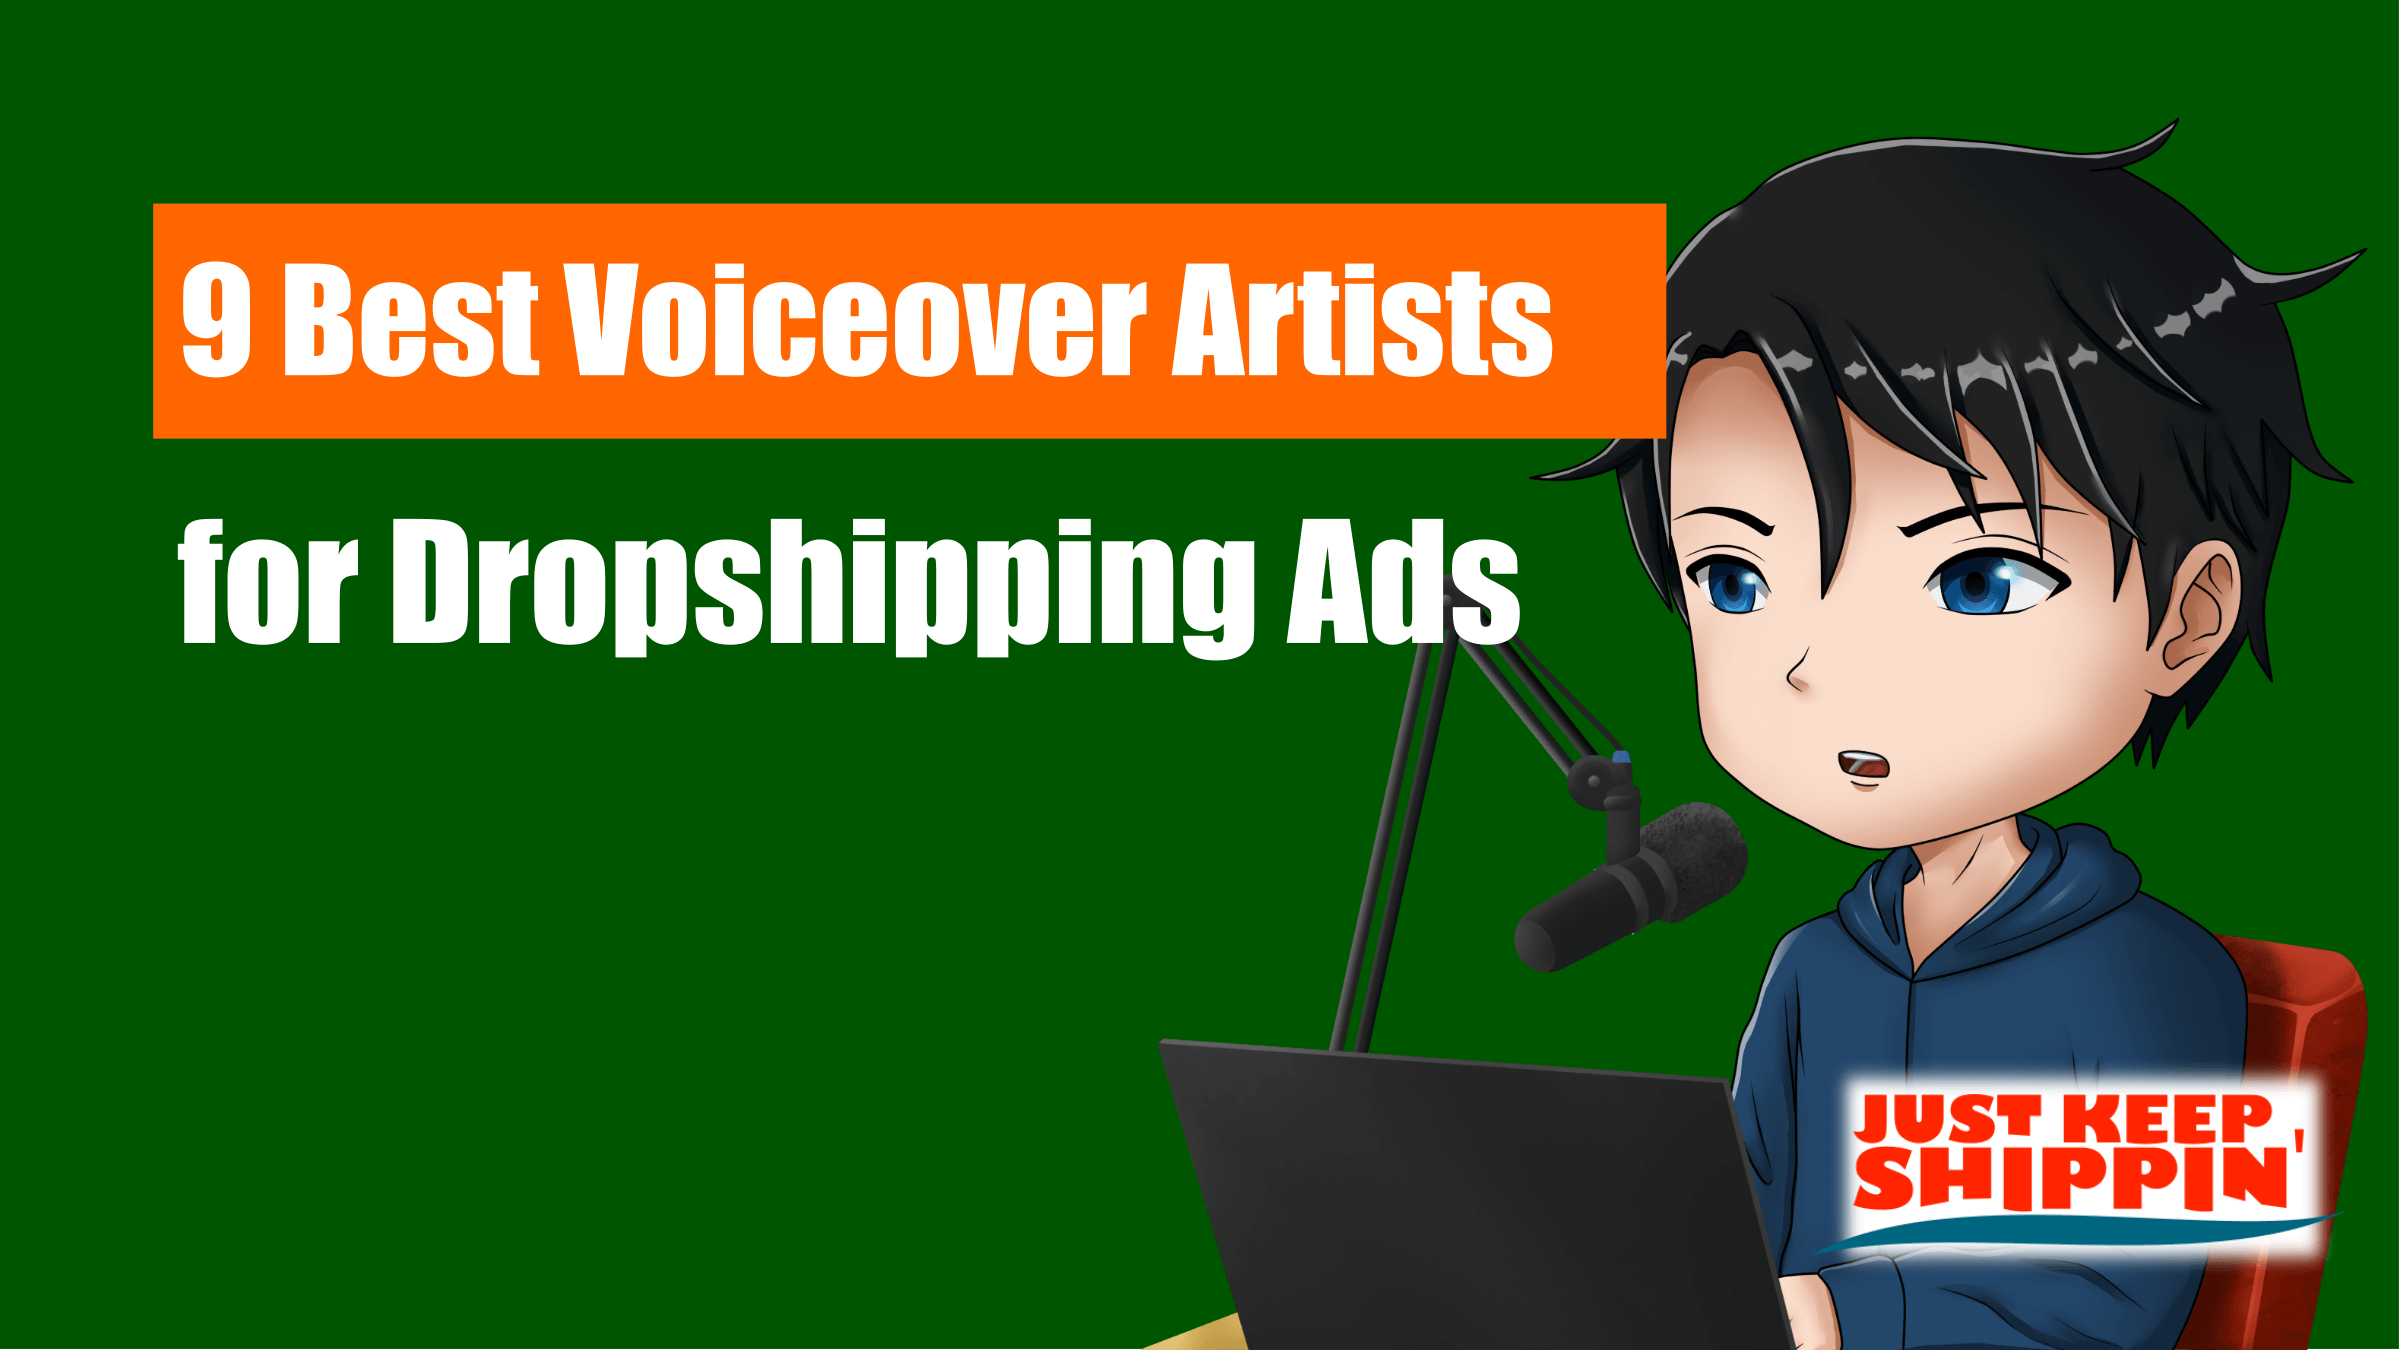 Best Voiceover Artists for Your Dropshipping Ad